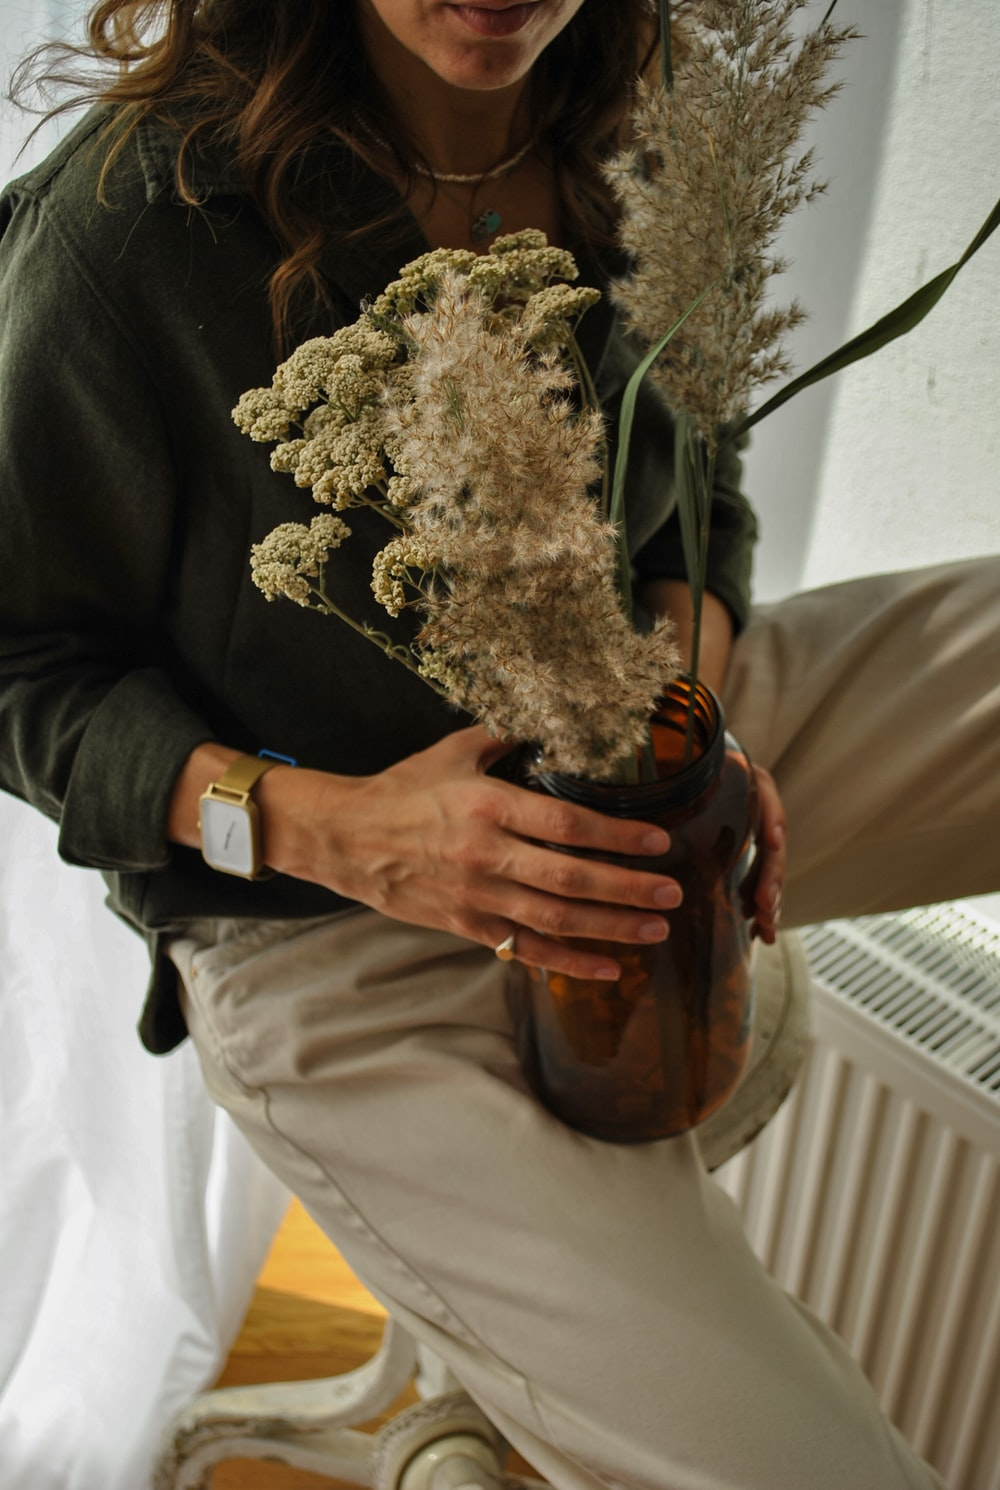 person holding bouquet of white flowers